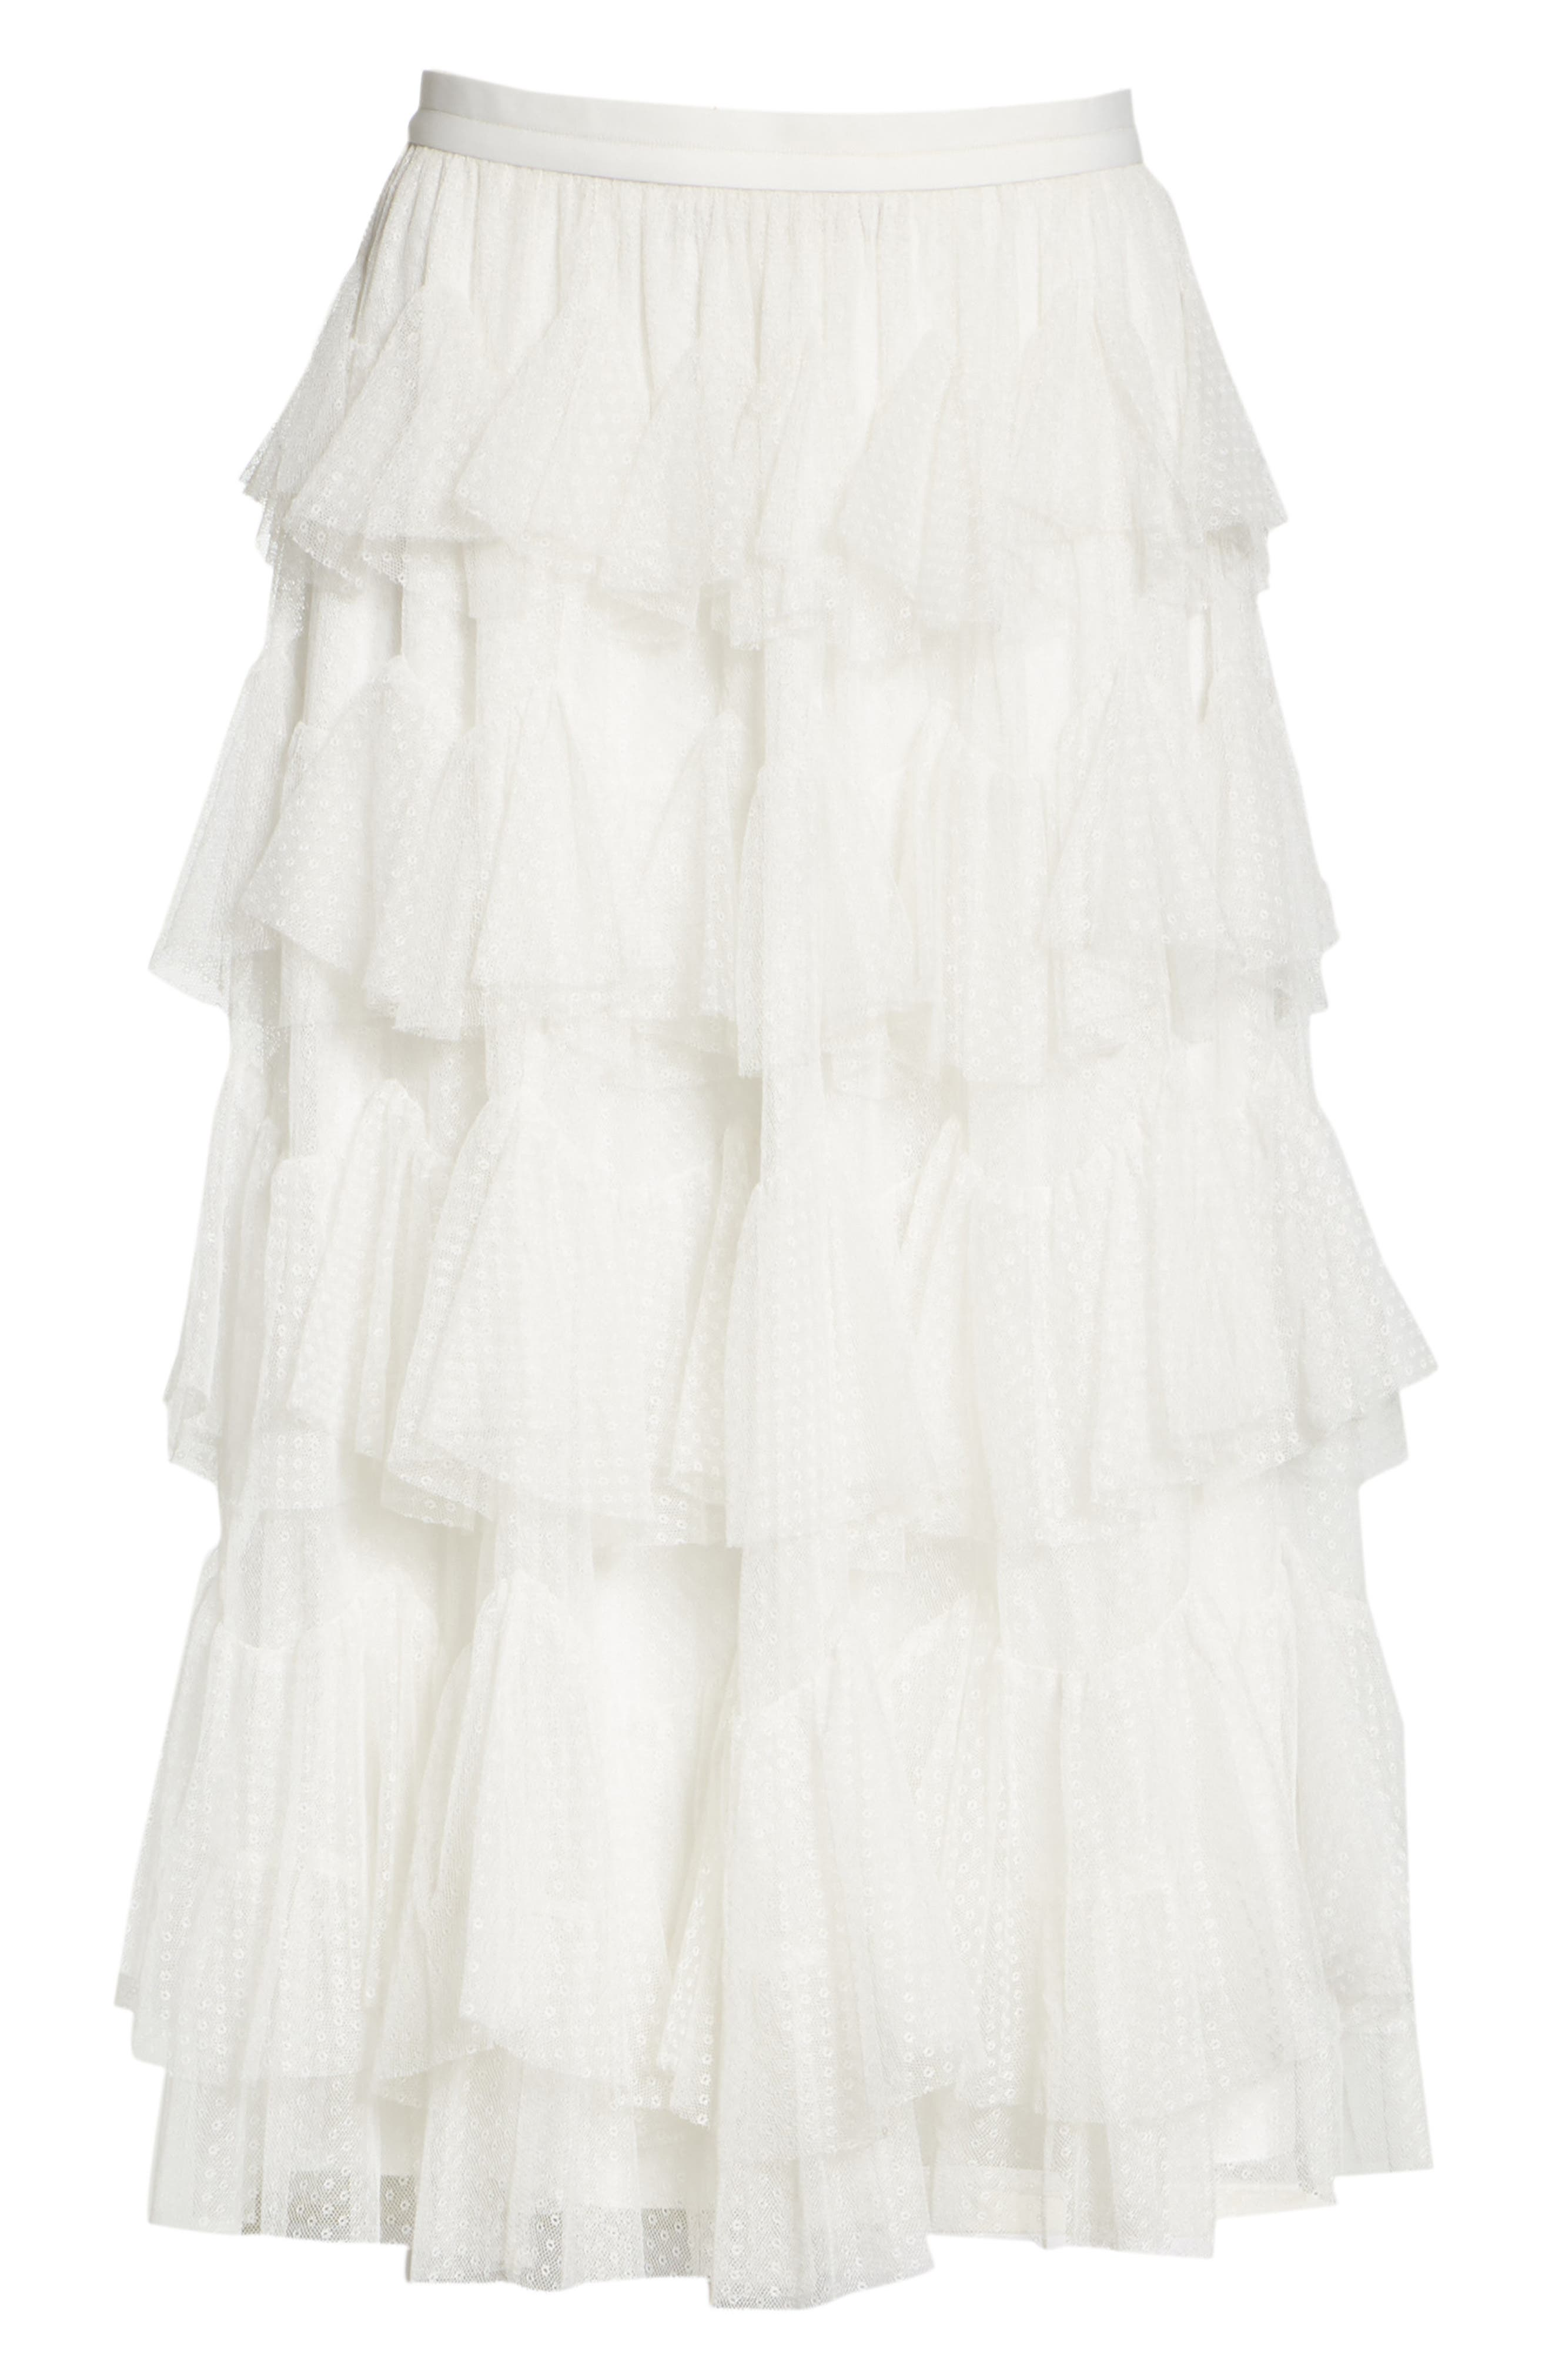 Tiered Tulle Skirt,                             Alternate thumbnail 6, color,                             Pearl